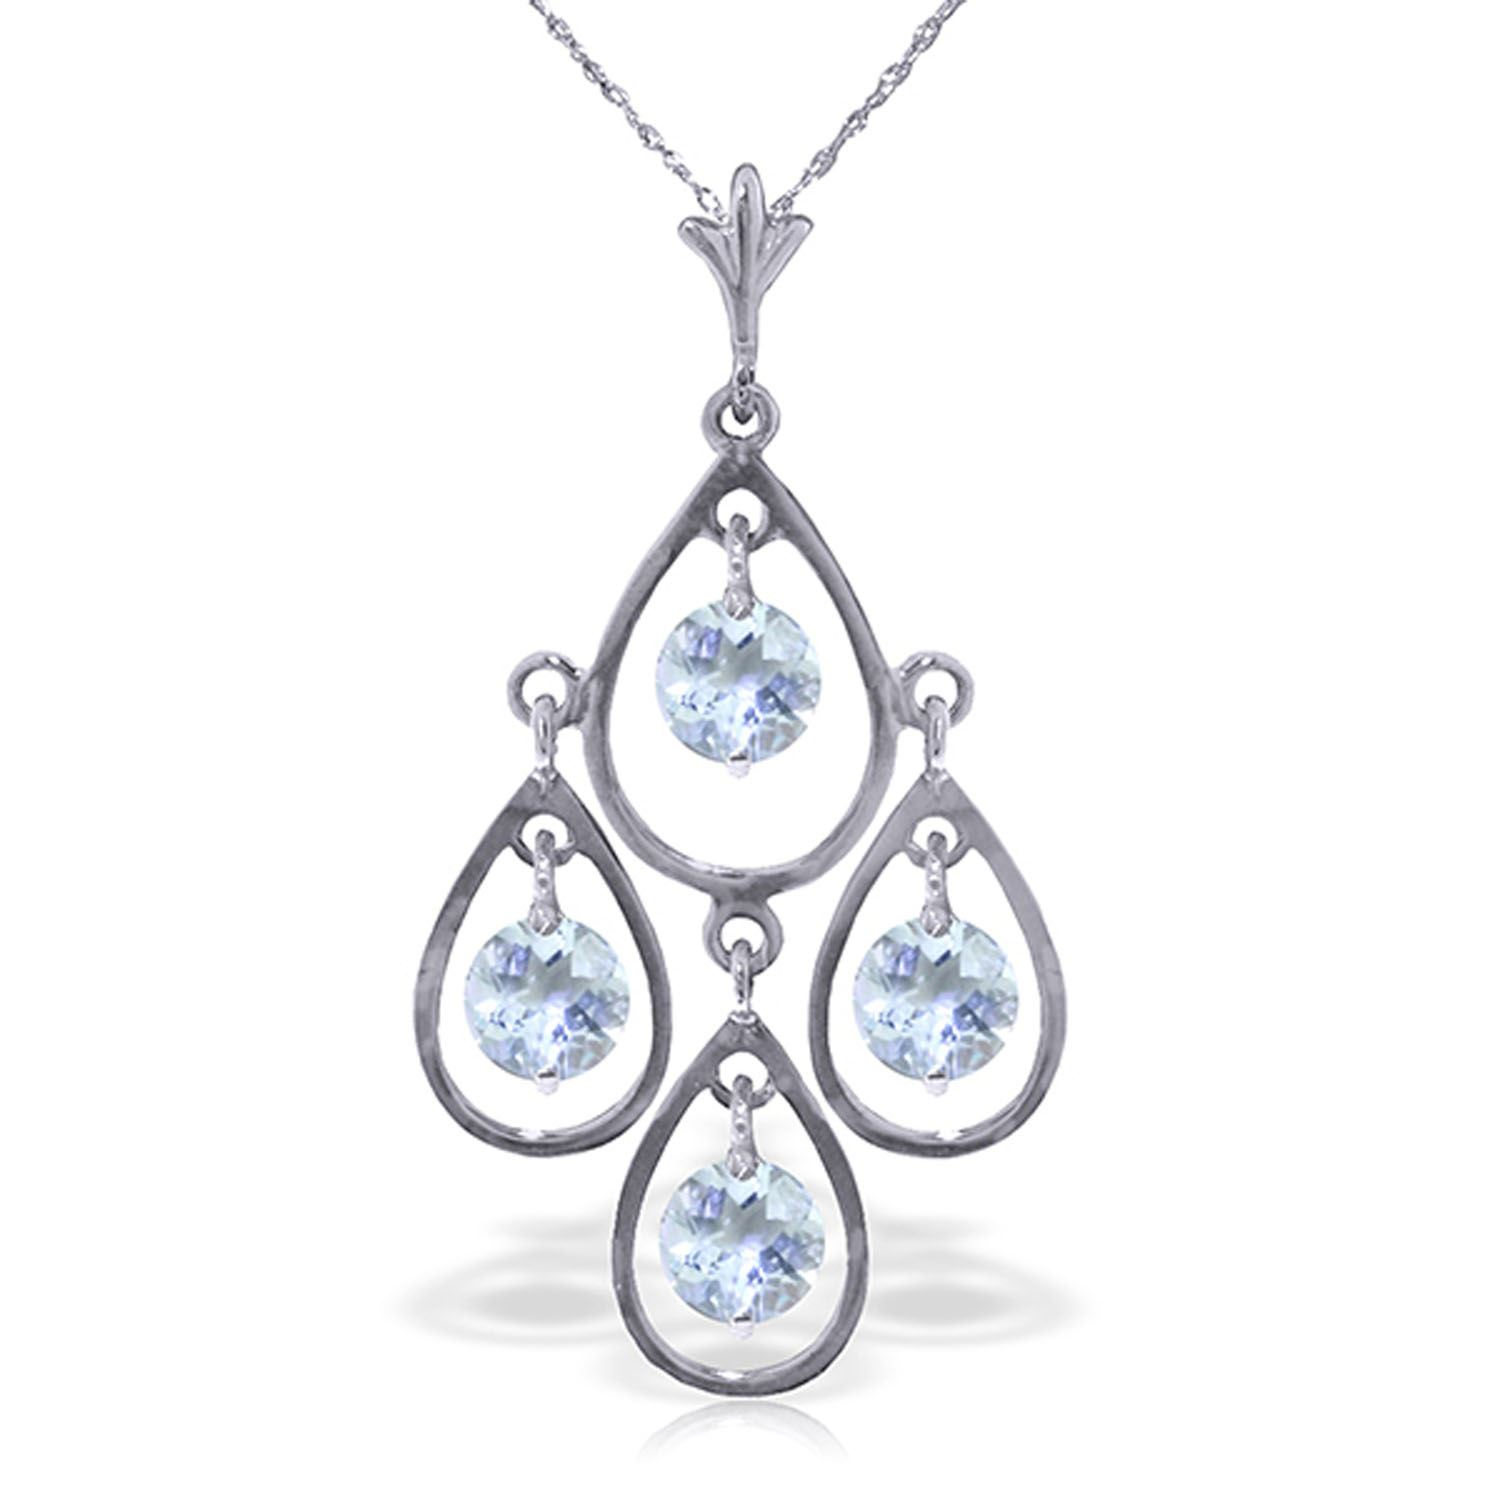 ALARRI 14K Solid Rose Gold Necklace w// Natural Diamond /& Aquamarines with 18 Inch Chain Length